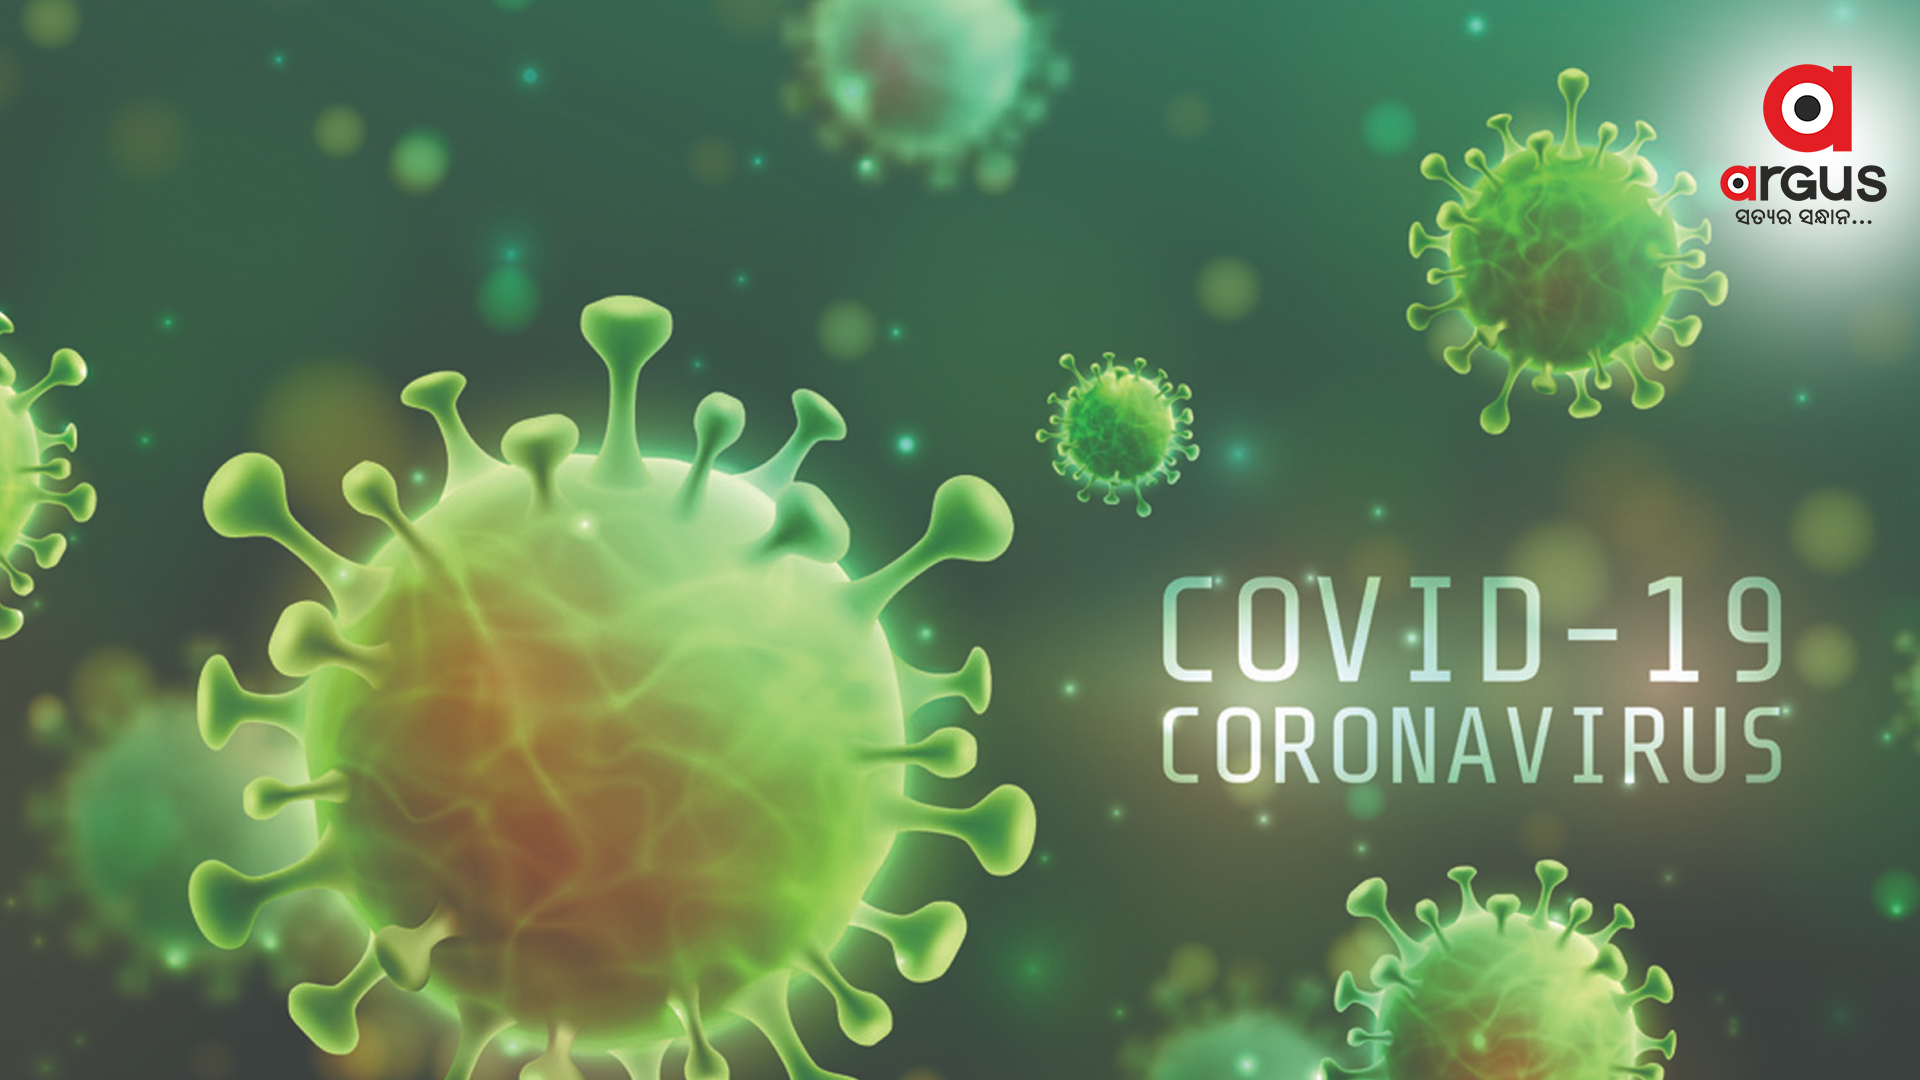 105 more test positive for Covid-19 in Odisha, 83 recover